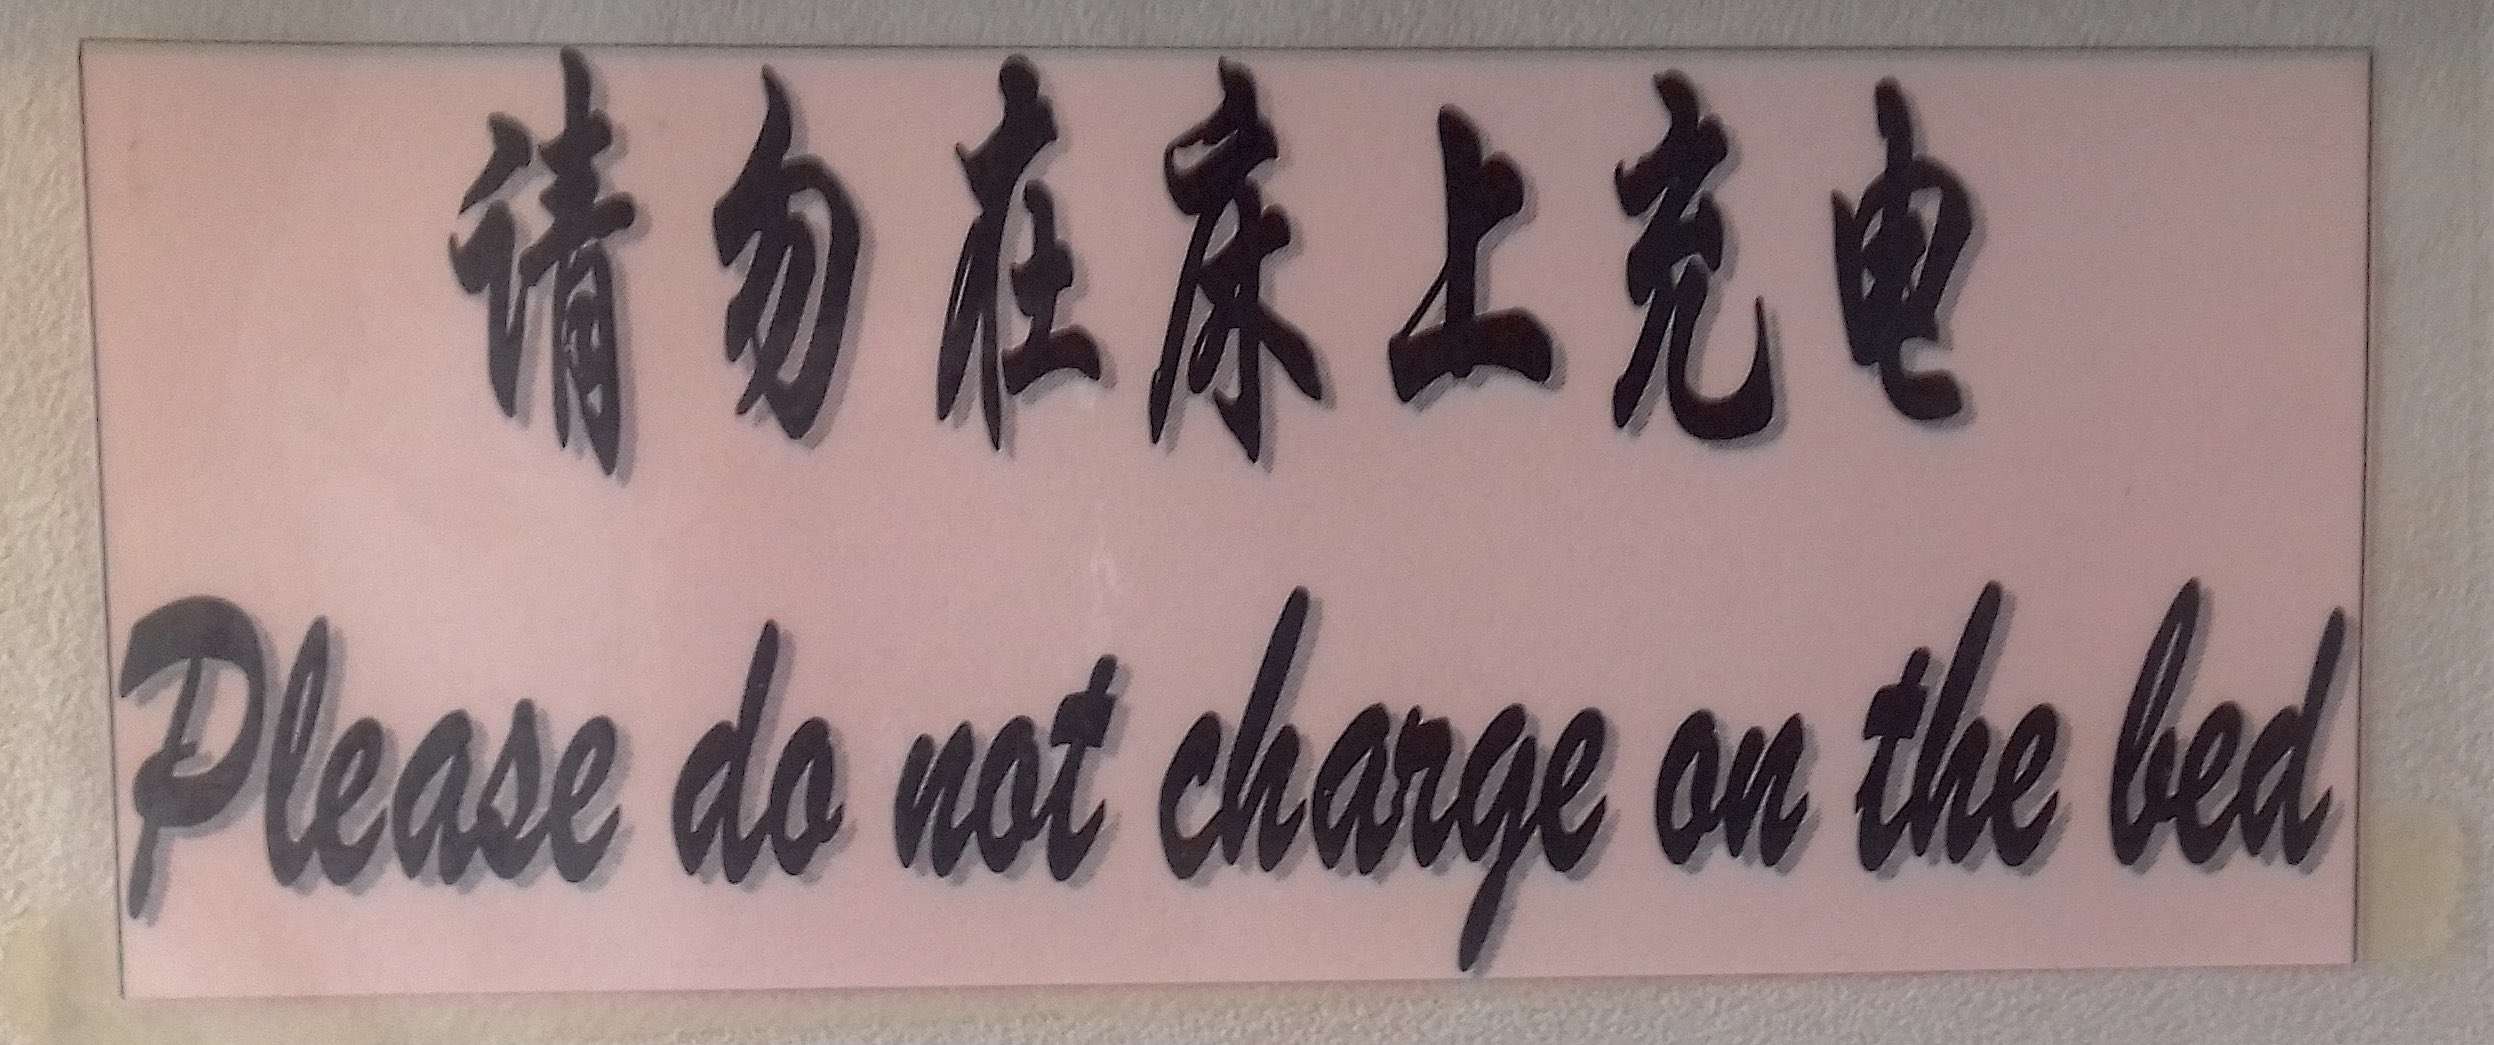 Charge on bed